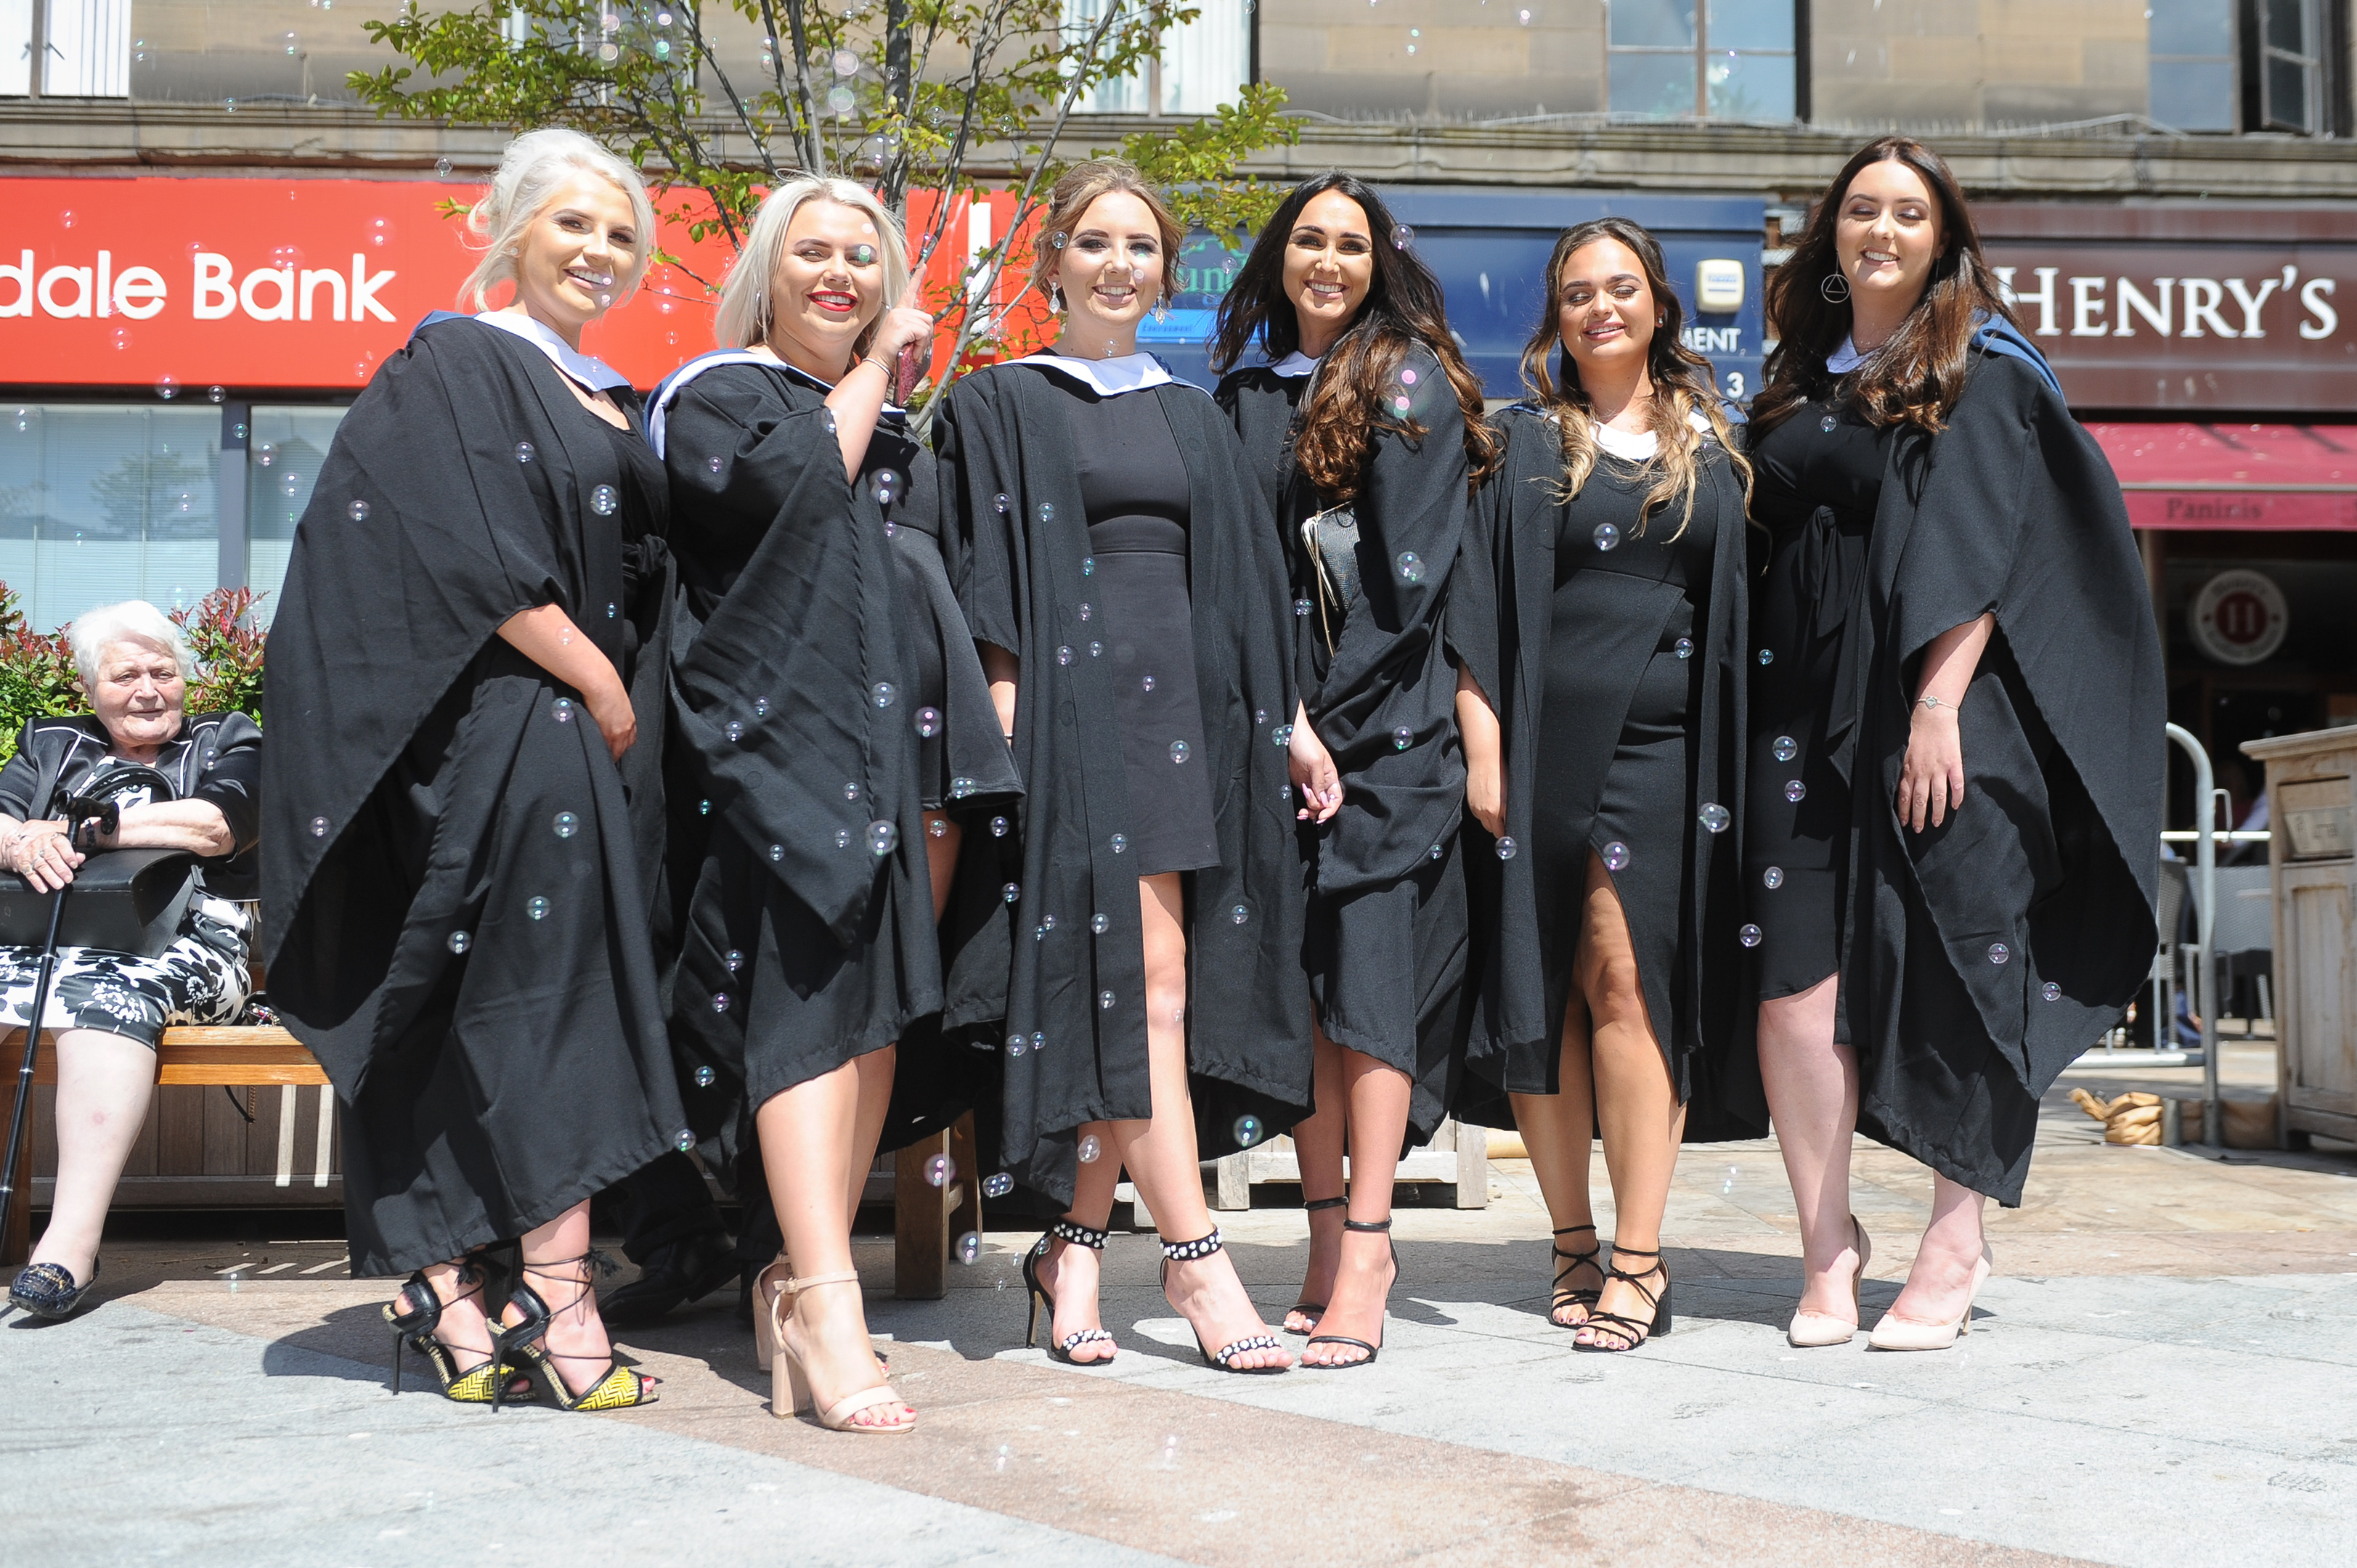 Molly Crombie, Amy Downie, Abigail Pass, Gemma Douglas, Brogan Laing and Abbie Rutherford celebrate graduating from Abertay University in 2018